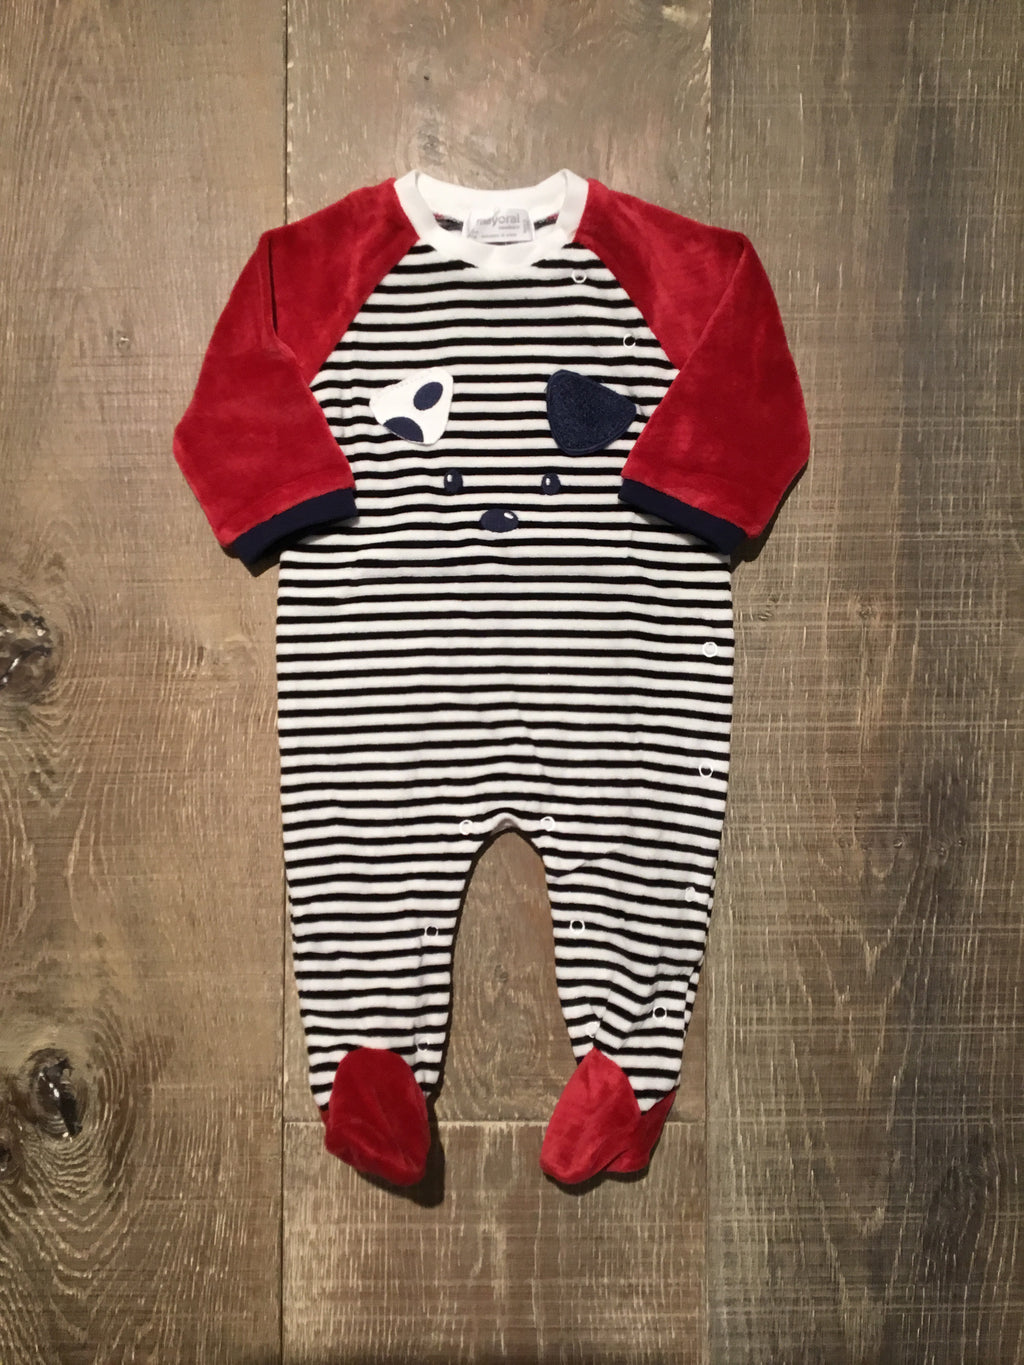 Red B&W Striped Pup Face Pjs